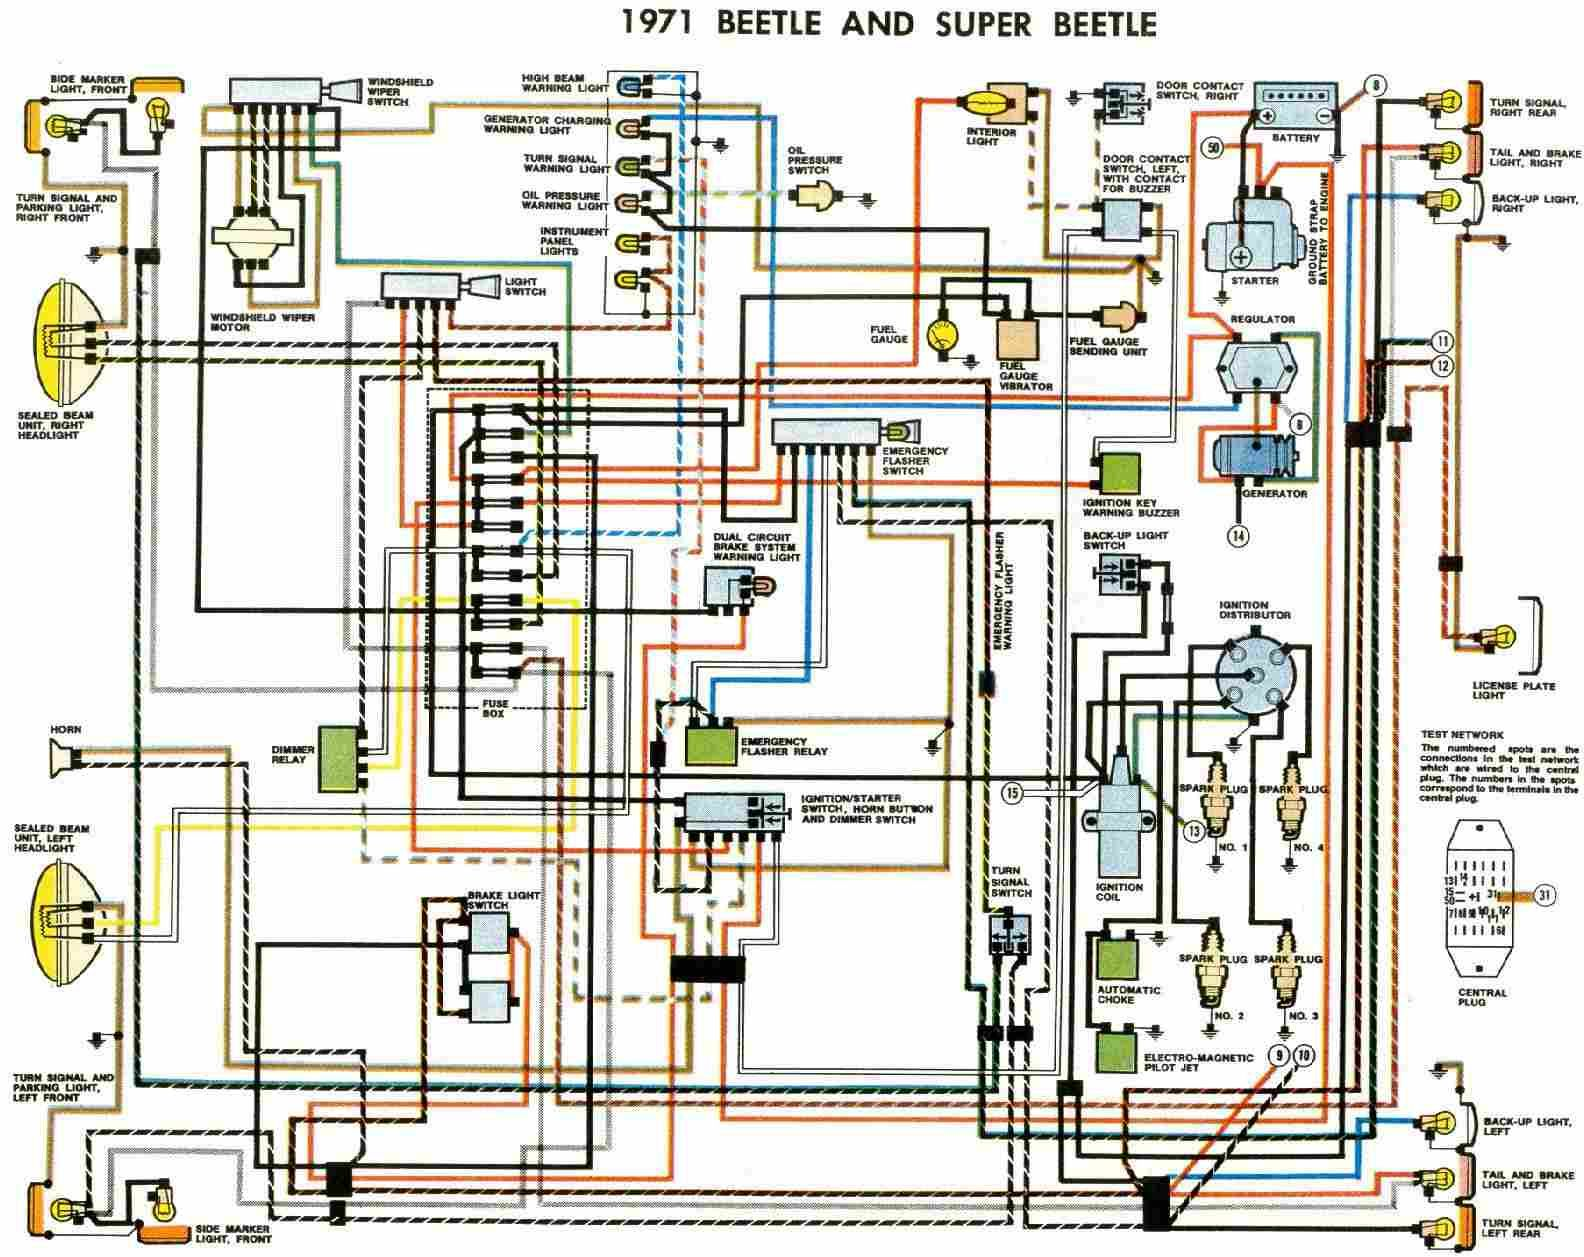 6379f2a777a0eb1b27fdba46670ceb6a free auto wiring diagram 1971 vw beetle and super beetle byocar vw thing wiring diagram at nearapp.co